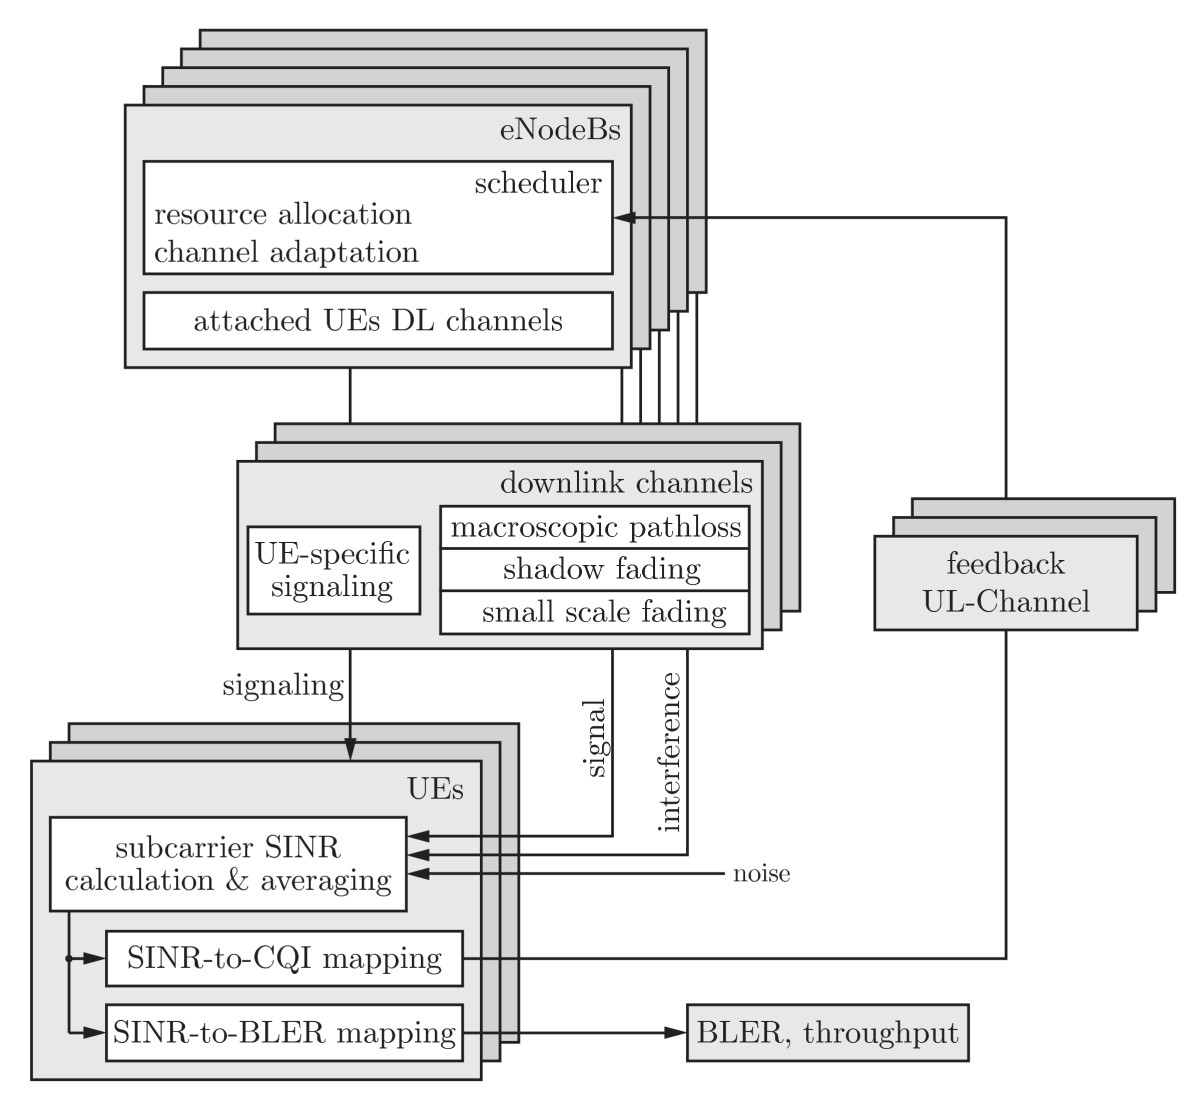 https://static-content.springer.com/image/art%3A10.1186%2F1687-6180-2011-29/MediaObjects/13634_2010_Article_26_Fig6_HTML.jpg